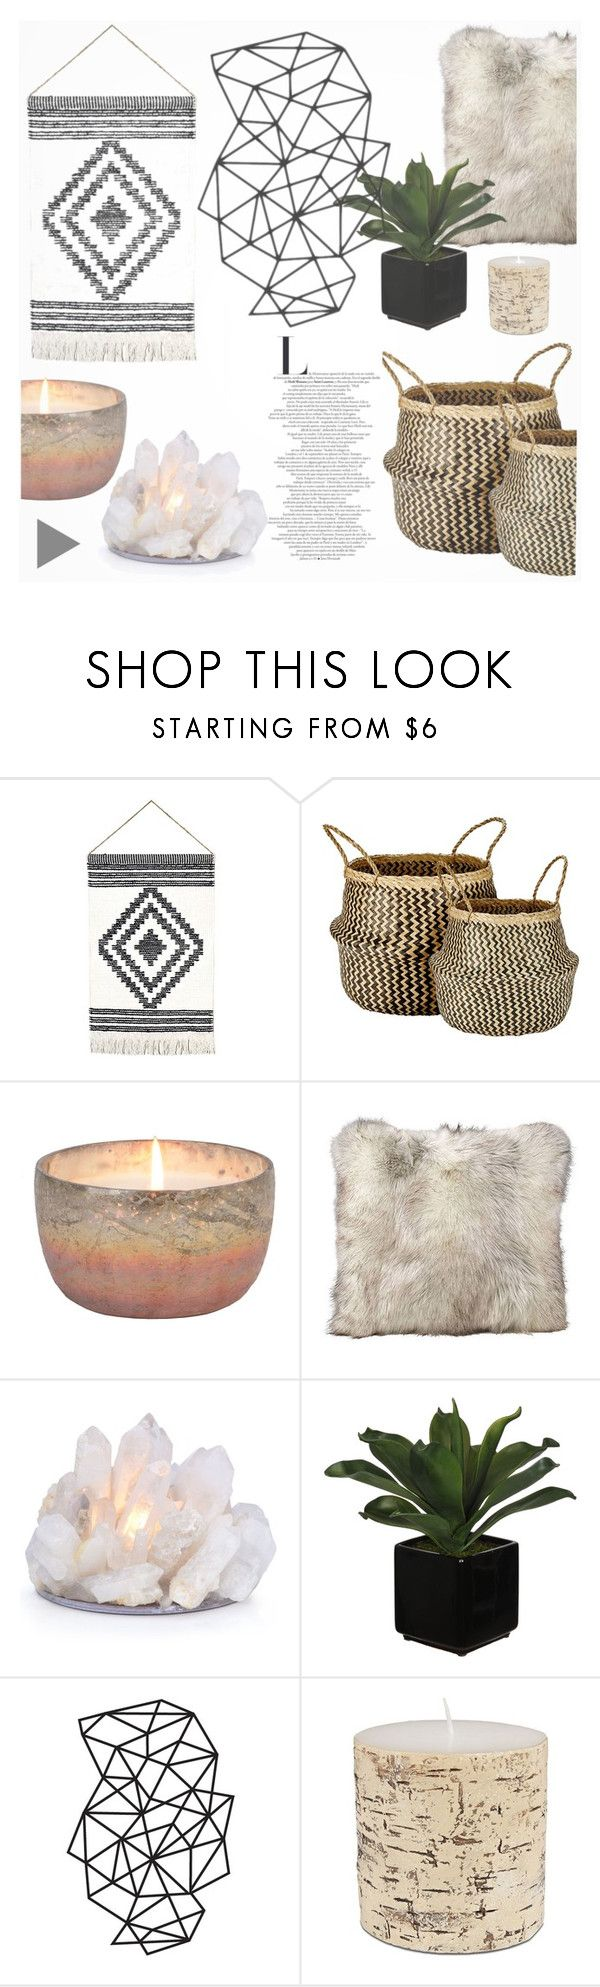 """Quartz"" by southernpearldesigns ❤ liked on Polyvore featuring interior, interiors, interior design, home, home decor, interior decorating, Murmur and Lord & Taylor"